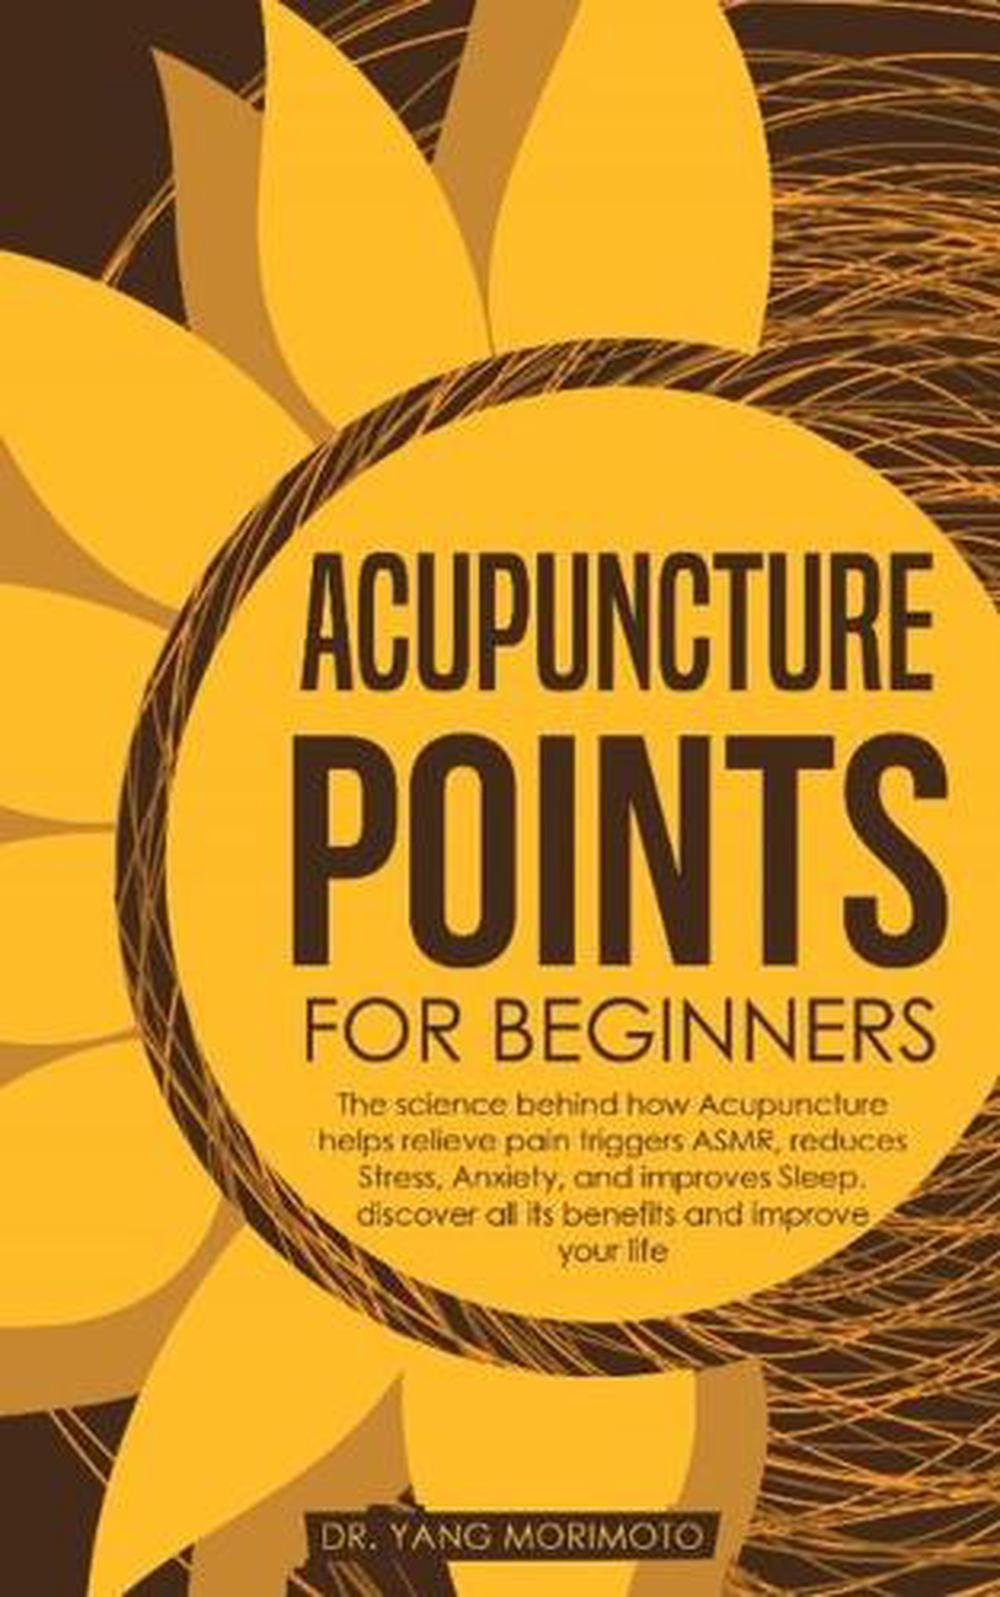 Acupuncture Points for Beginners by Dr Yang Morimoto Free ...